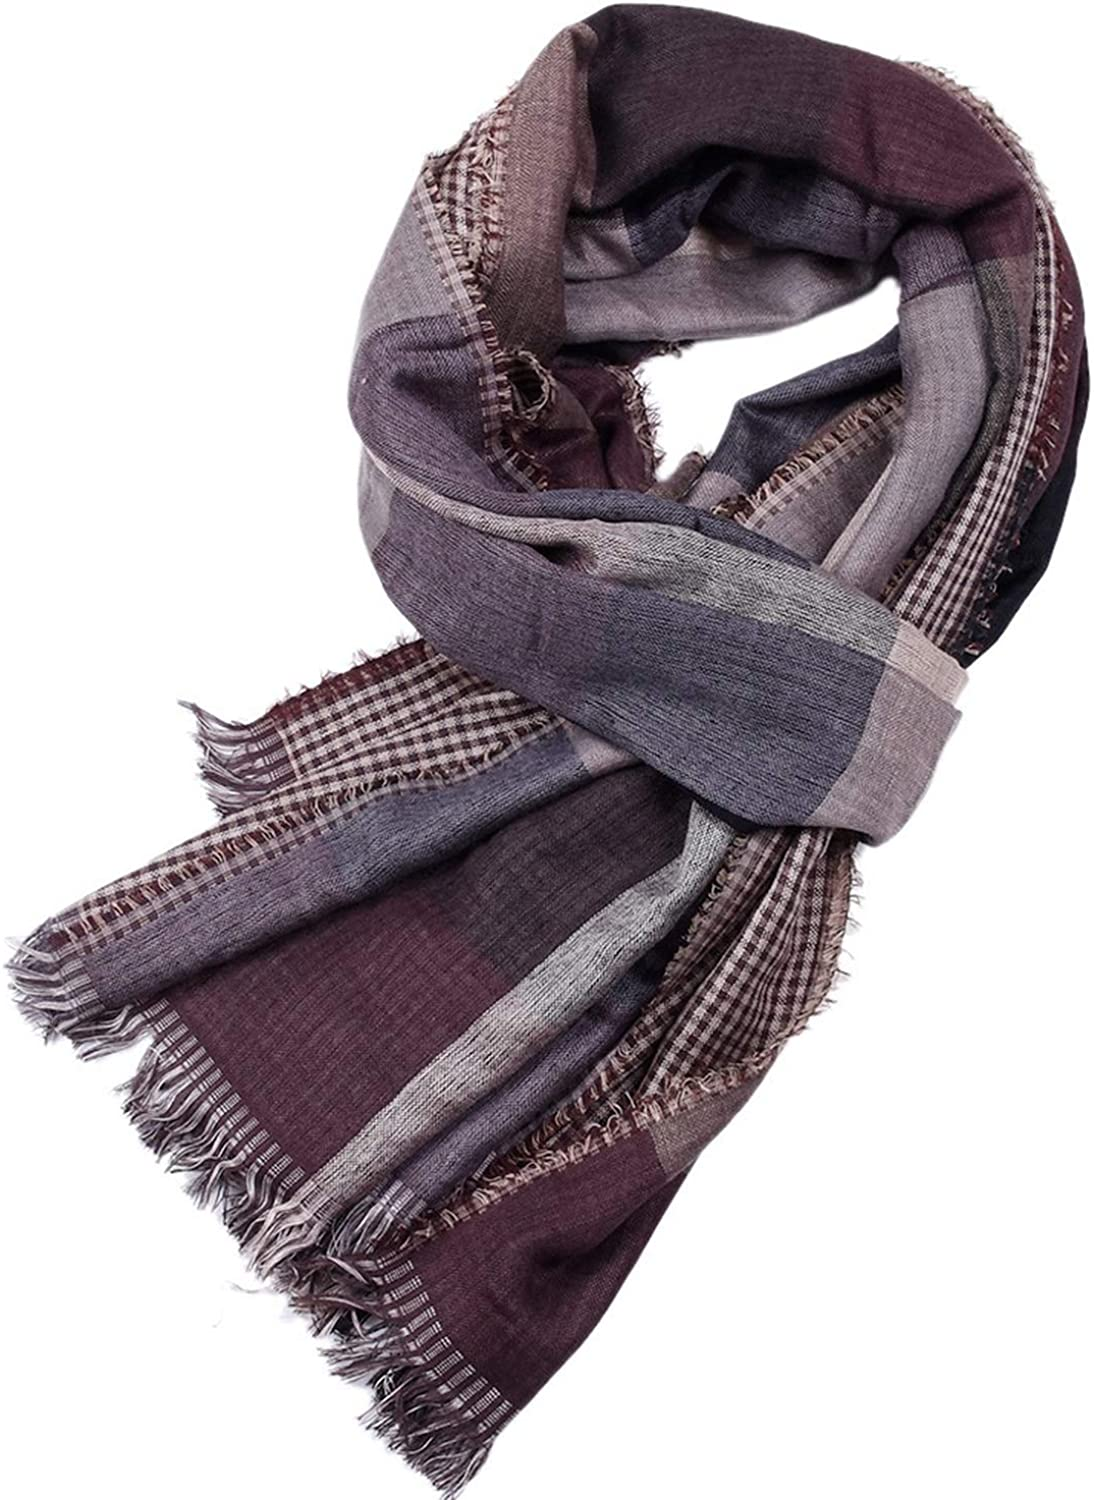 HOT-house Tie dyeing Dyed Men Scarf Autumn Soft Plaid Double Side Men Long Scarves